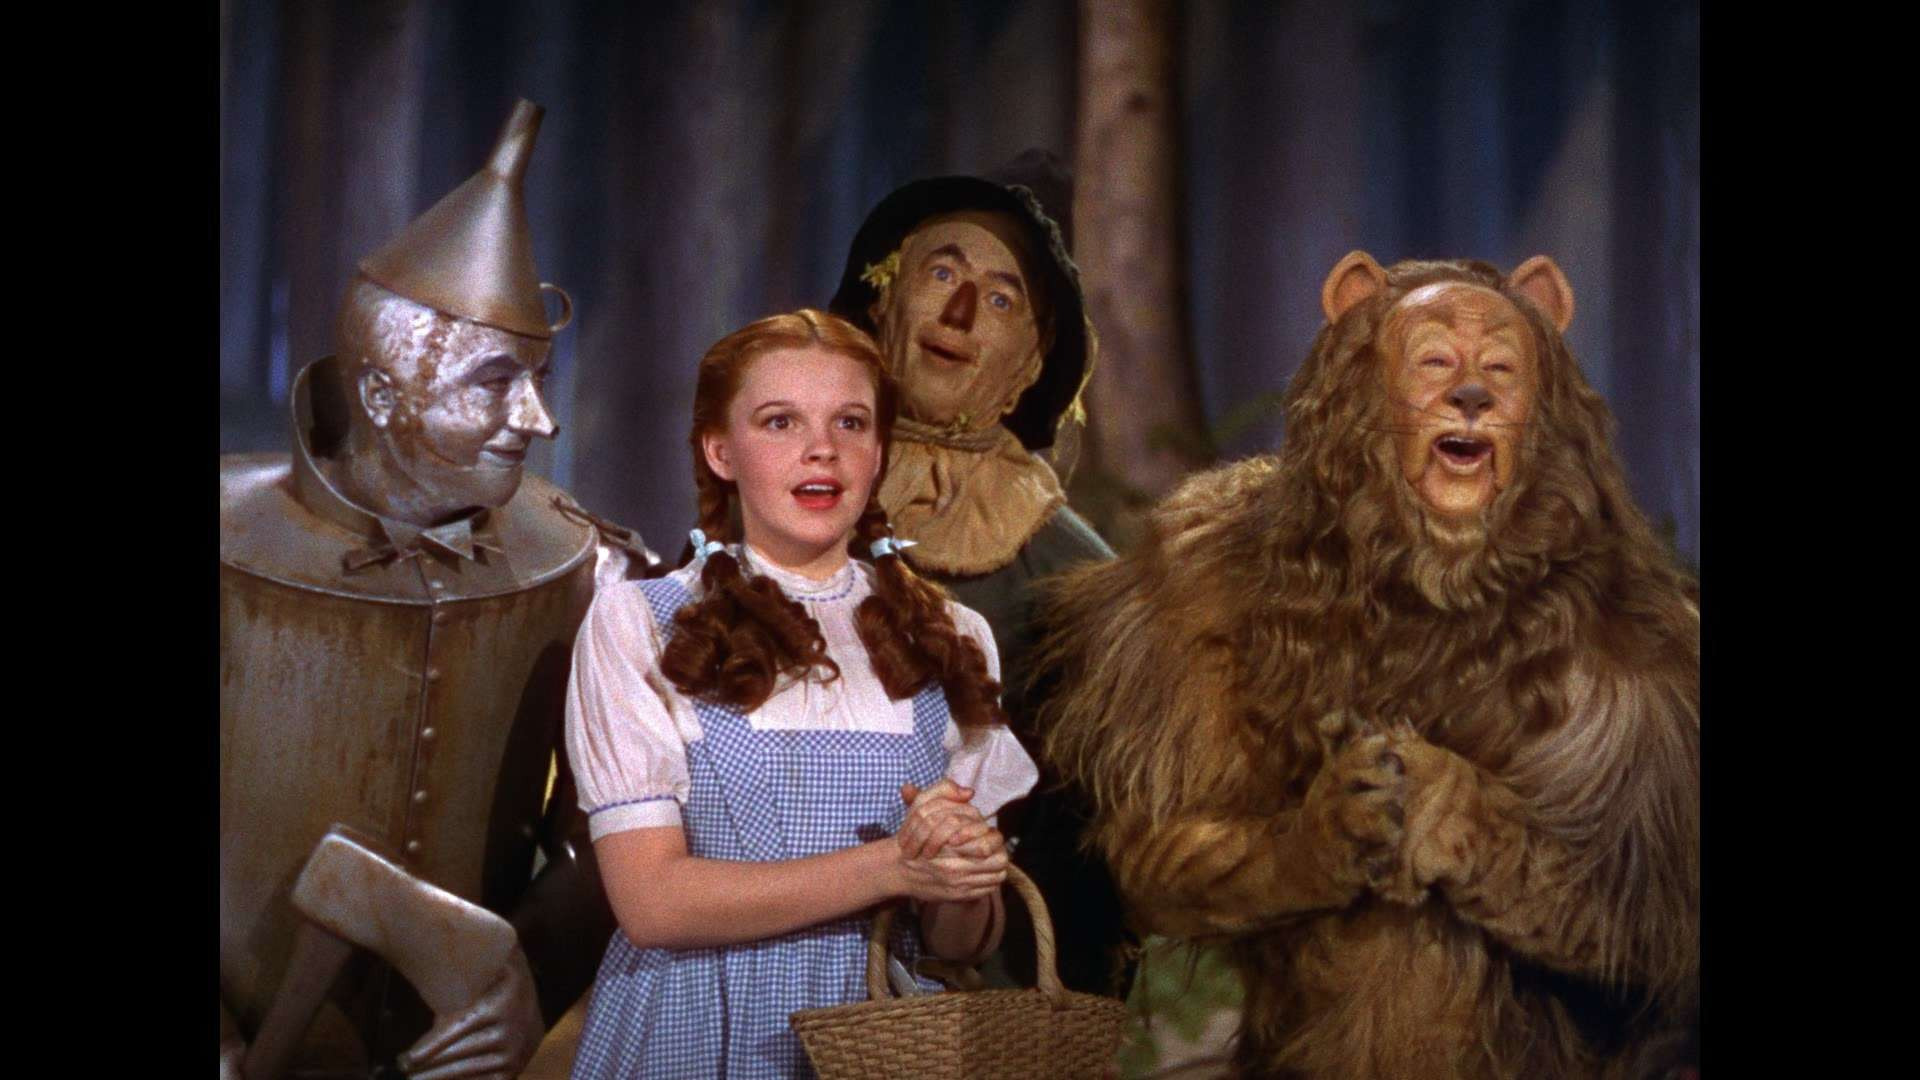 The wizard of oz wallpaper hd wallpapers - The wizard of oz hd ...